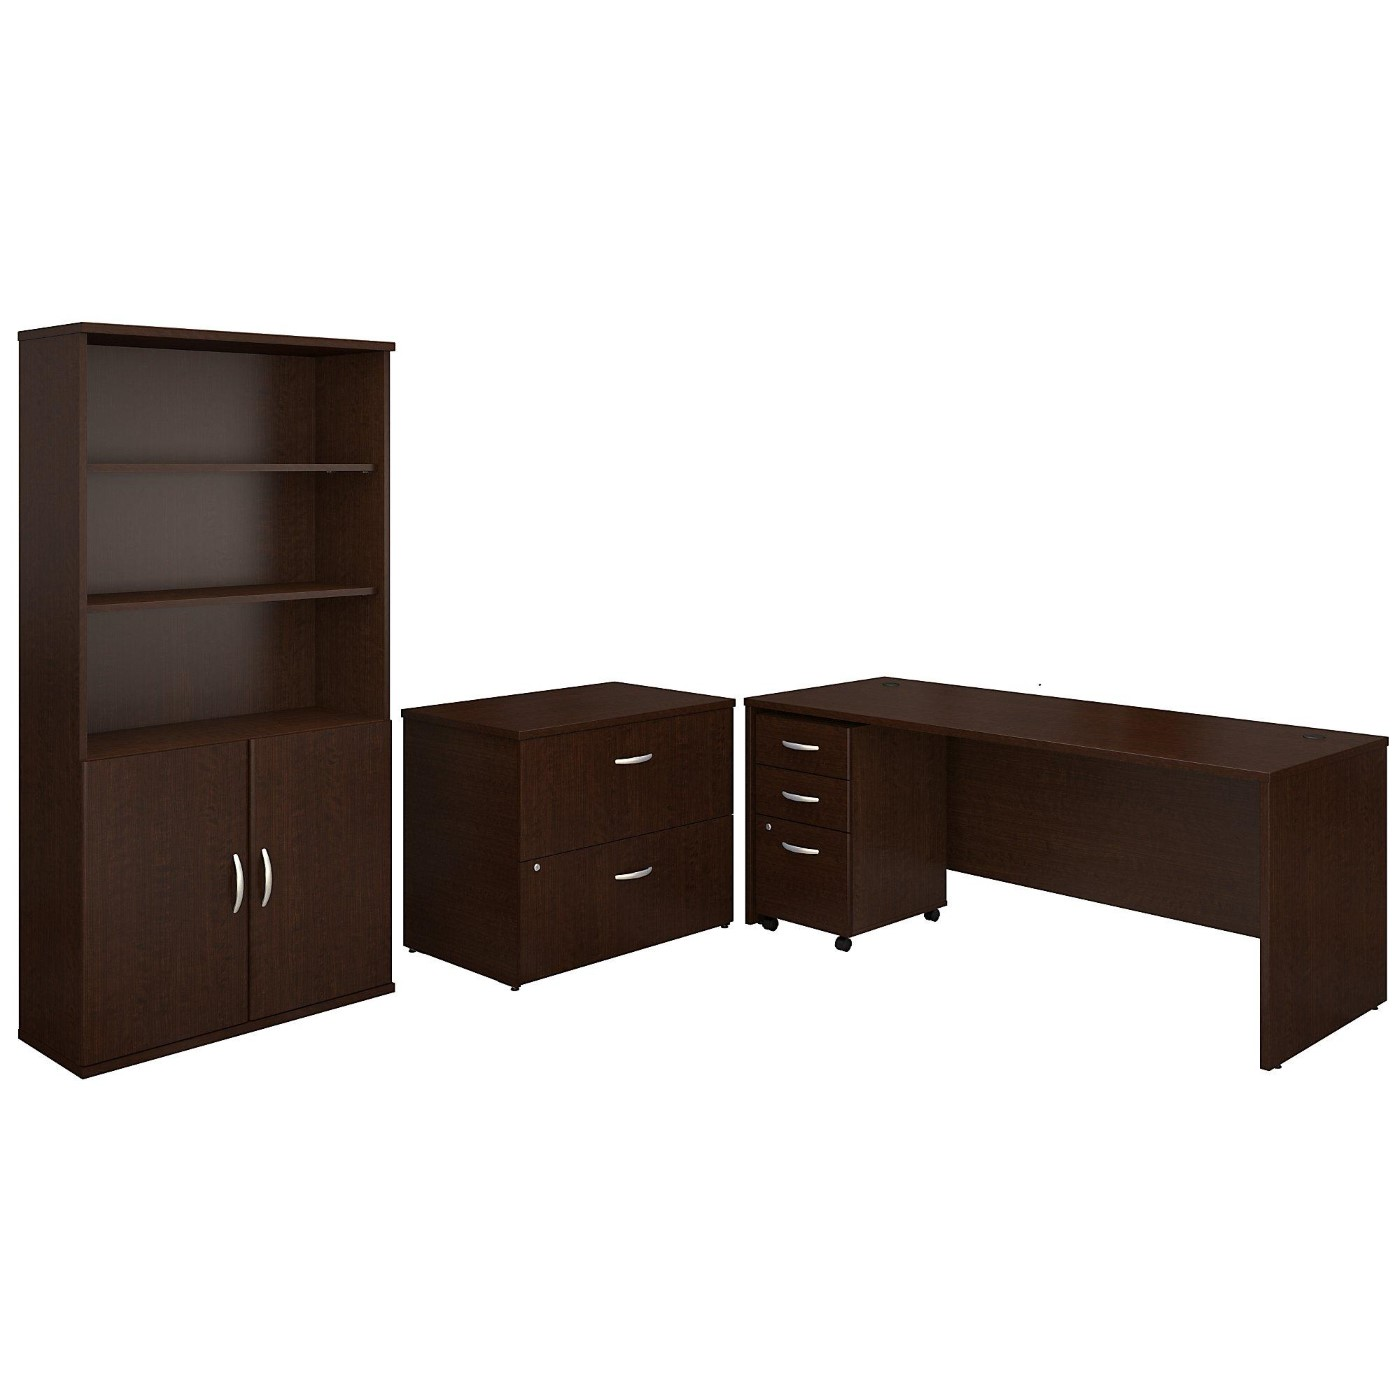 BUSH BUSINESS FURNITURE SERIES C 72W OFFICE DESK WITH BOOKCASE AND FILE CABINETS. FREE SHIPPING</font></b></font>&#x1F384<font color=red><b>ERGONOMICHOME HOLIDAY SALE - ENDS DEC. 17, 2019</b></font>&#x1F384